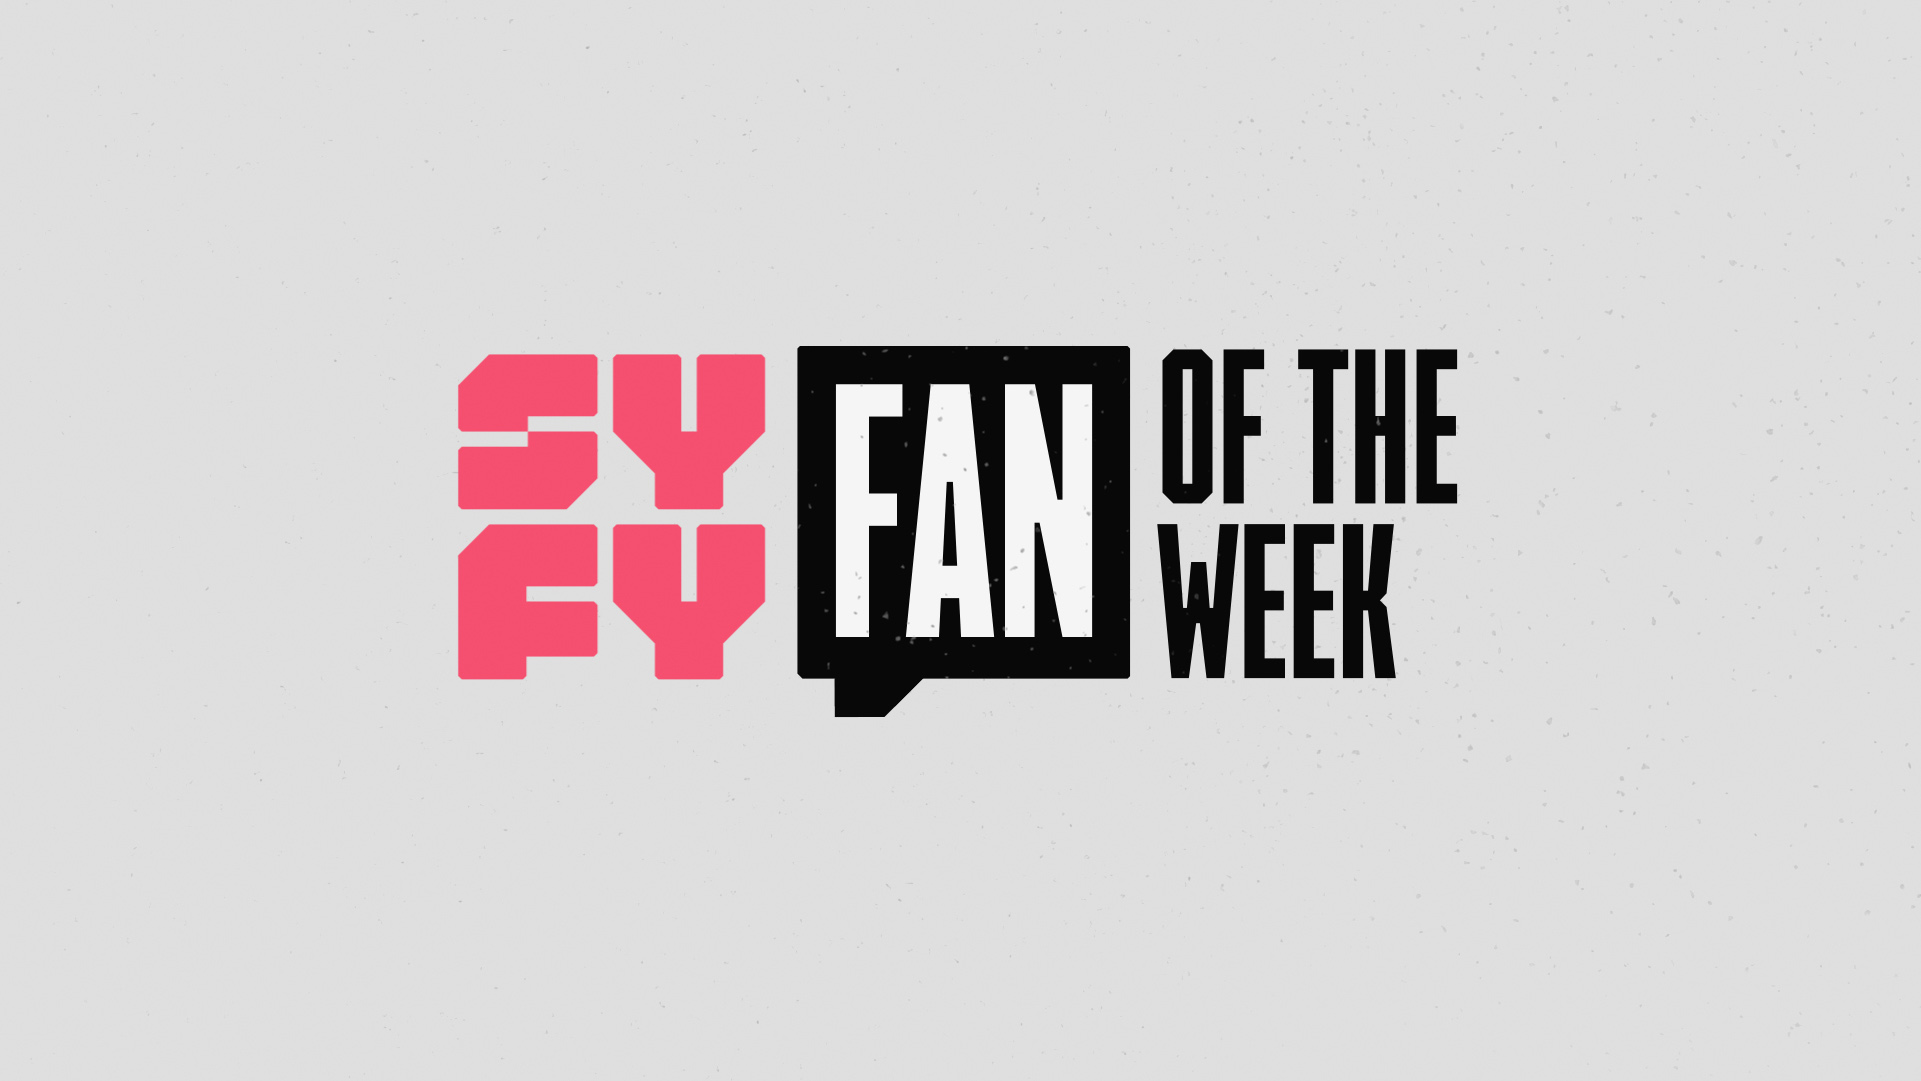 Design style frame 02 for SYFY Fan of The Week promo